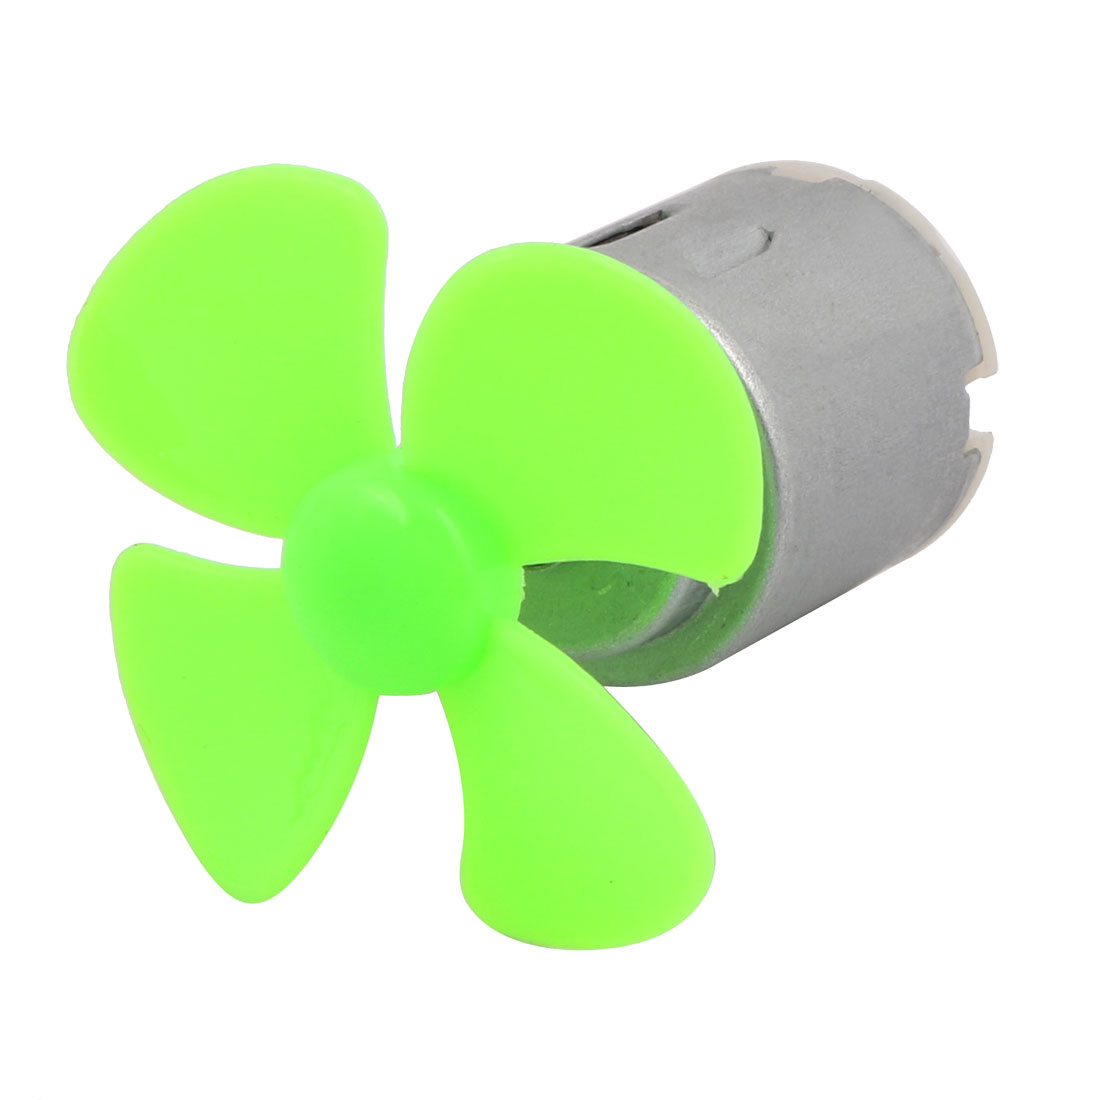 DC 3V 0.13A 9000RPM Strong Force Motor 4 Blades 40mm Green Propeller for RC Aircraft